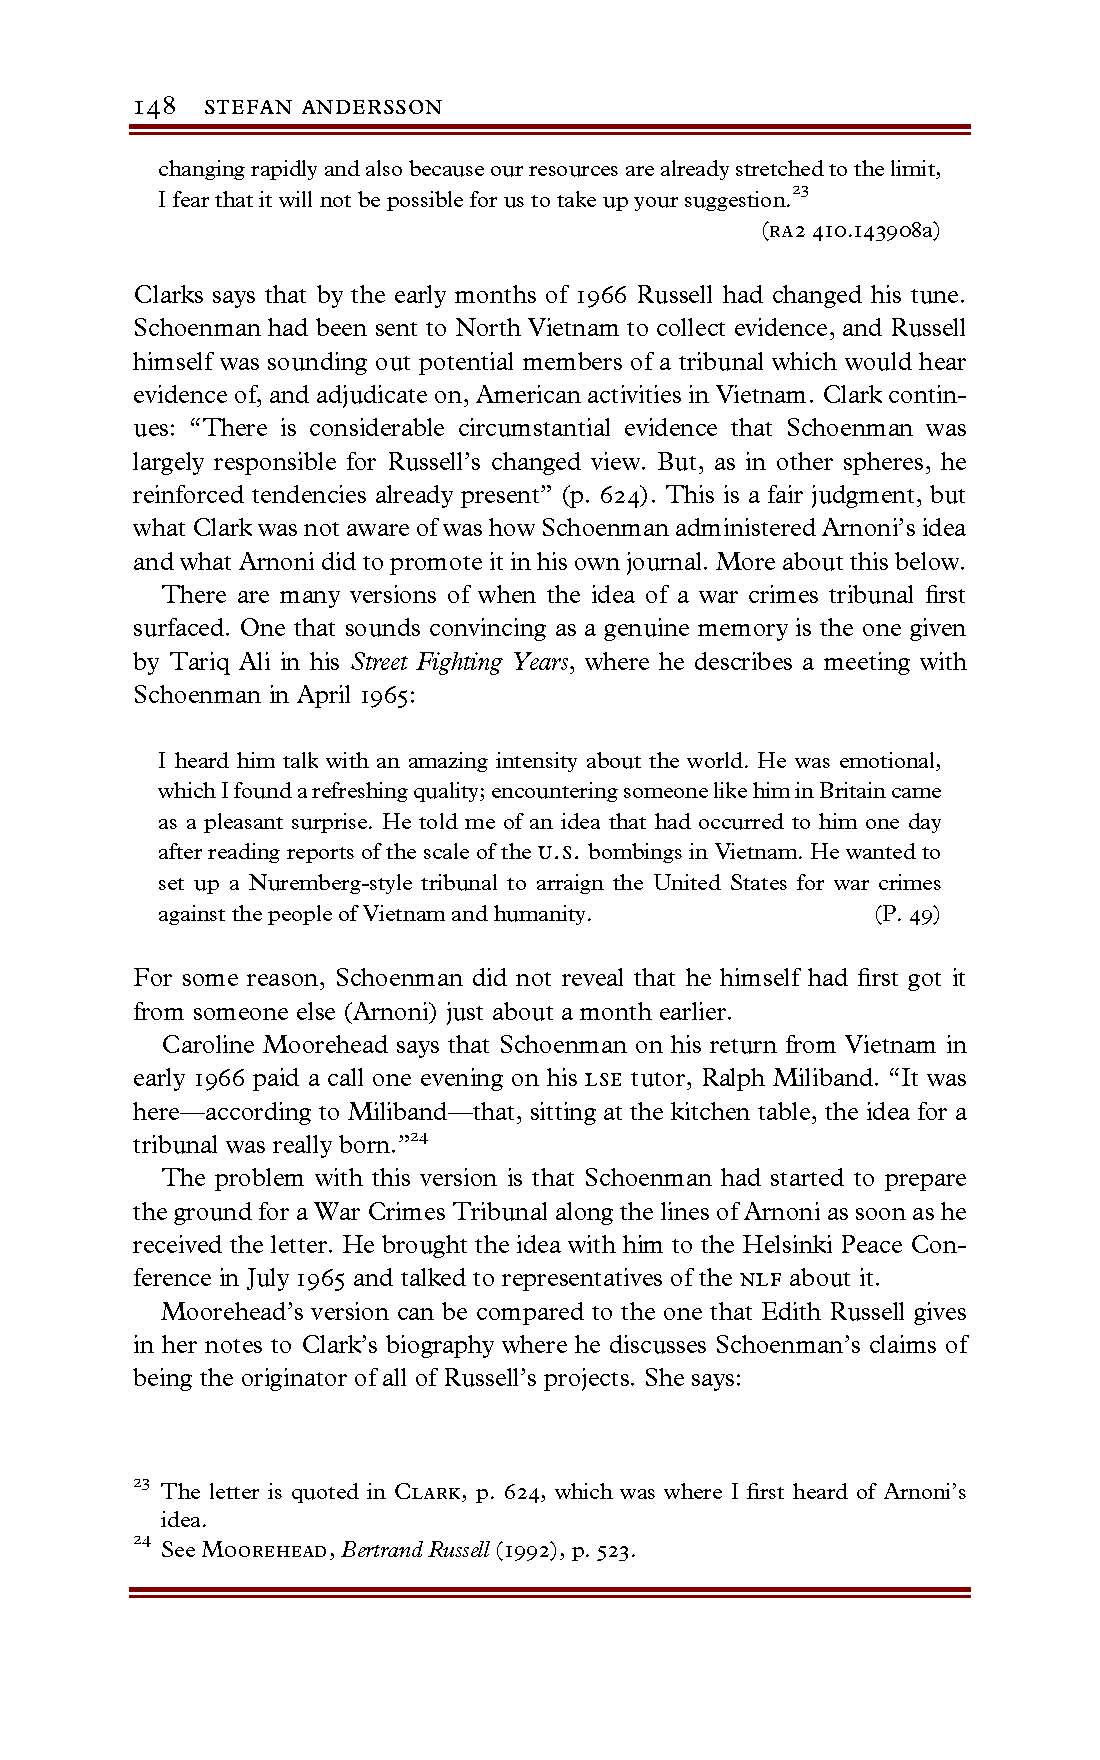 Anderson-- Pages from RJ 3402 050 red-5 (2)-1_Page_14